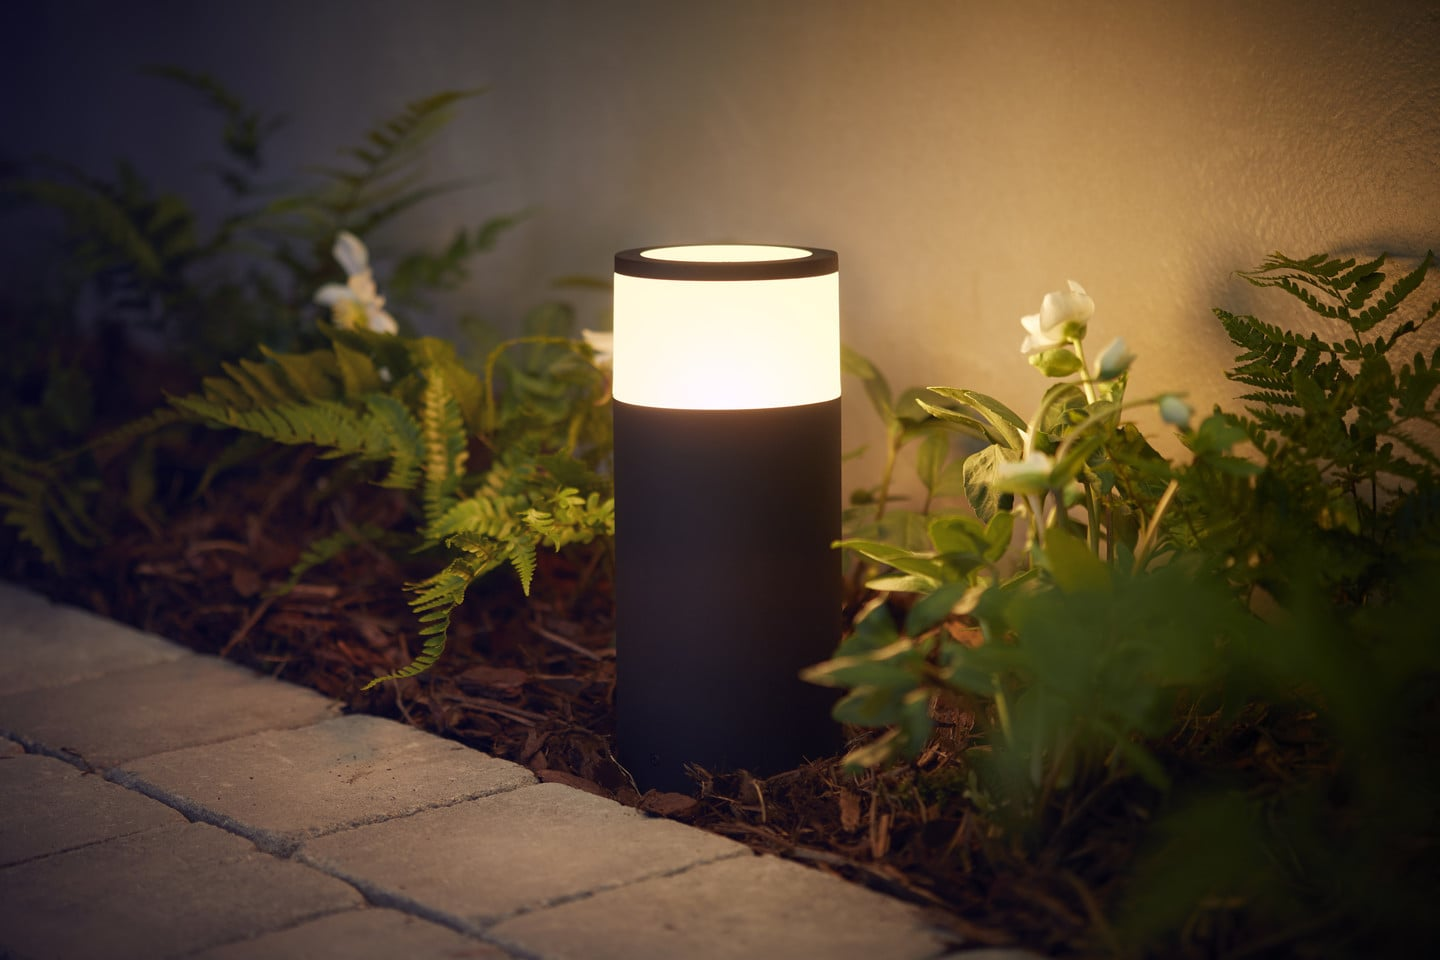 Philips Hue smart lightning hits the garden with outdoor lamp options